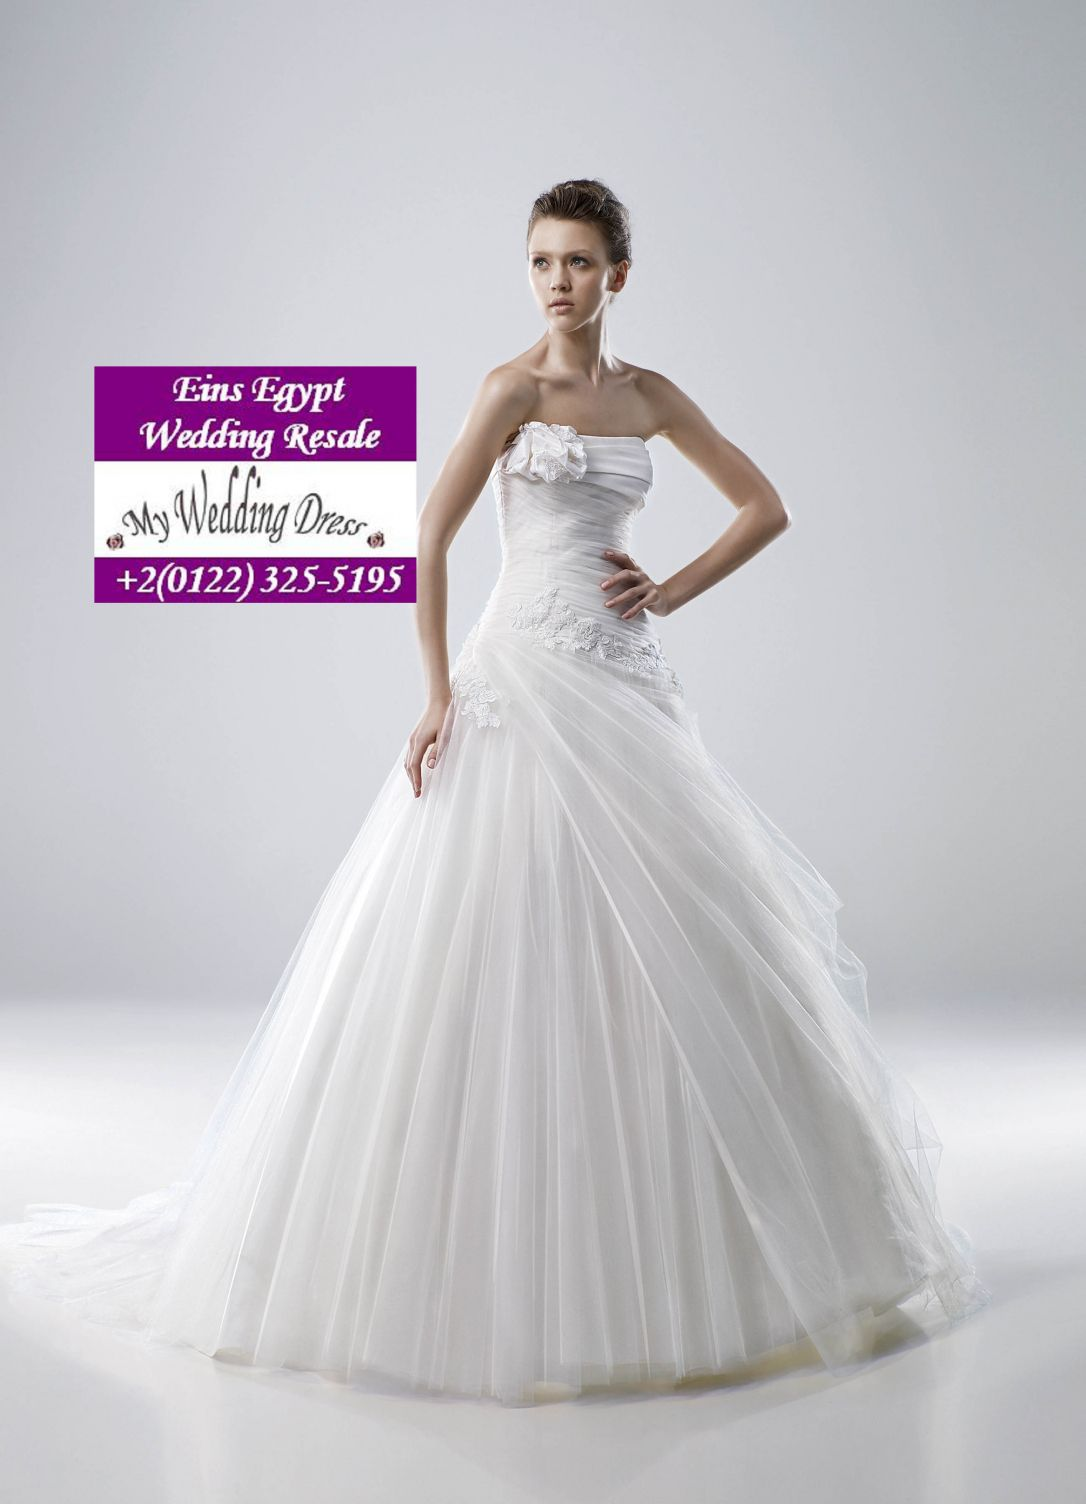 Where to Sell Used Wedding Dress - Wedding Dresses for Cheap Check ...